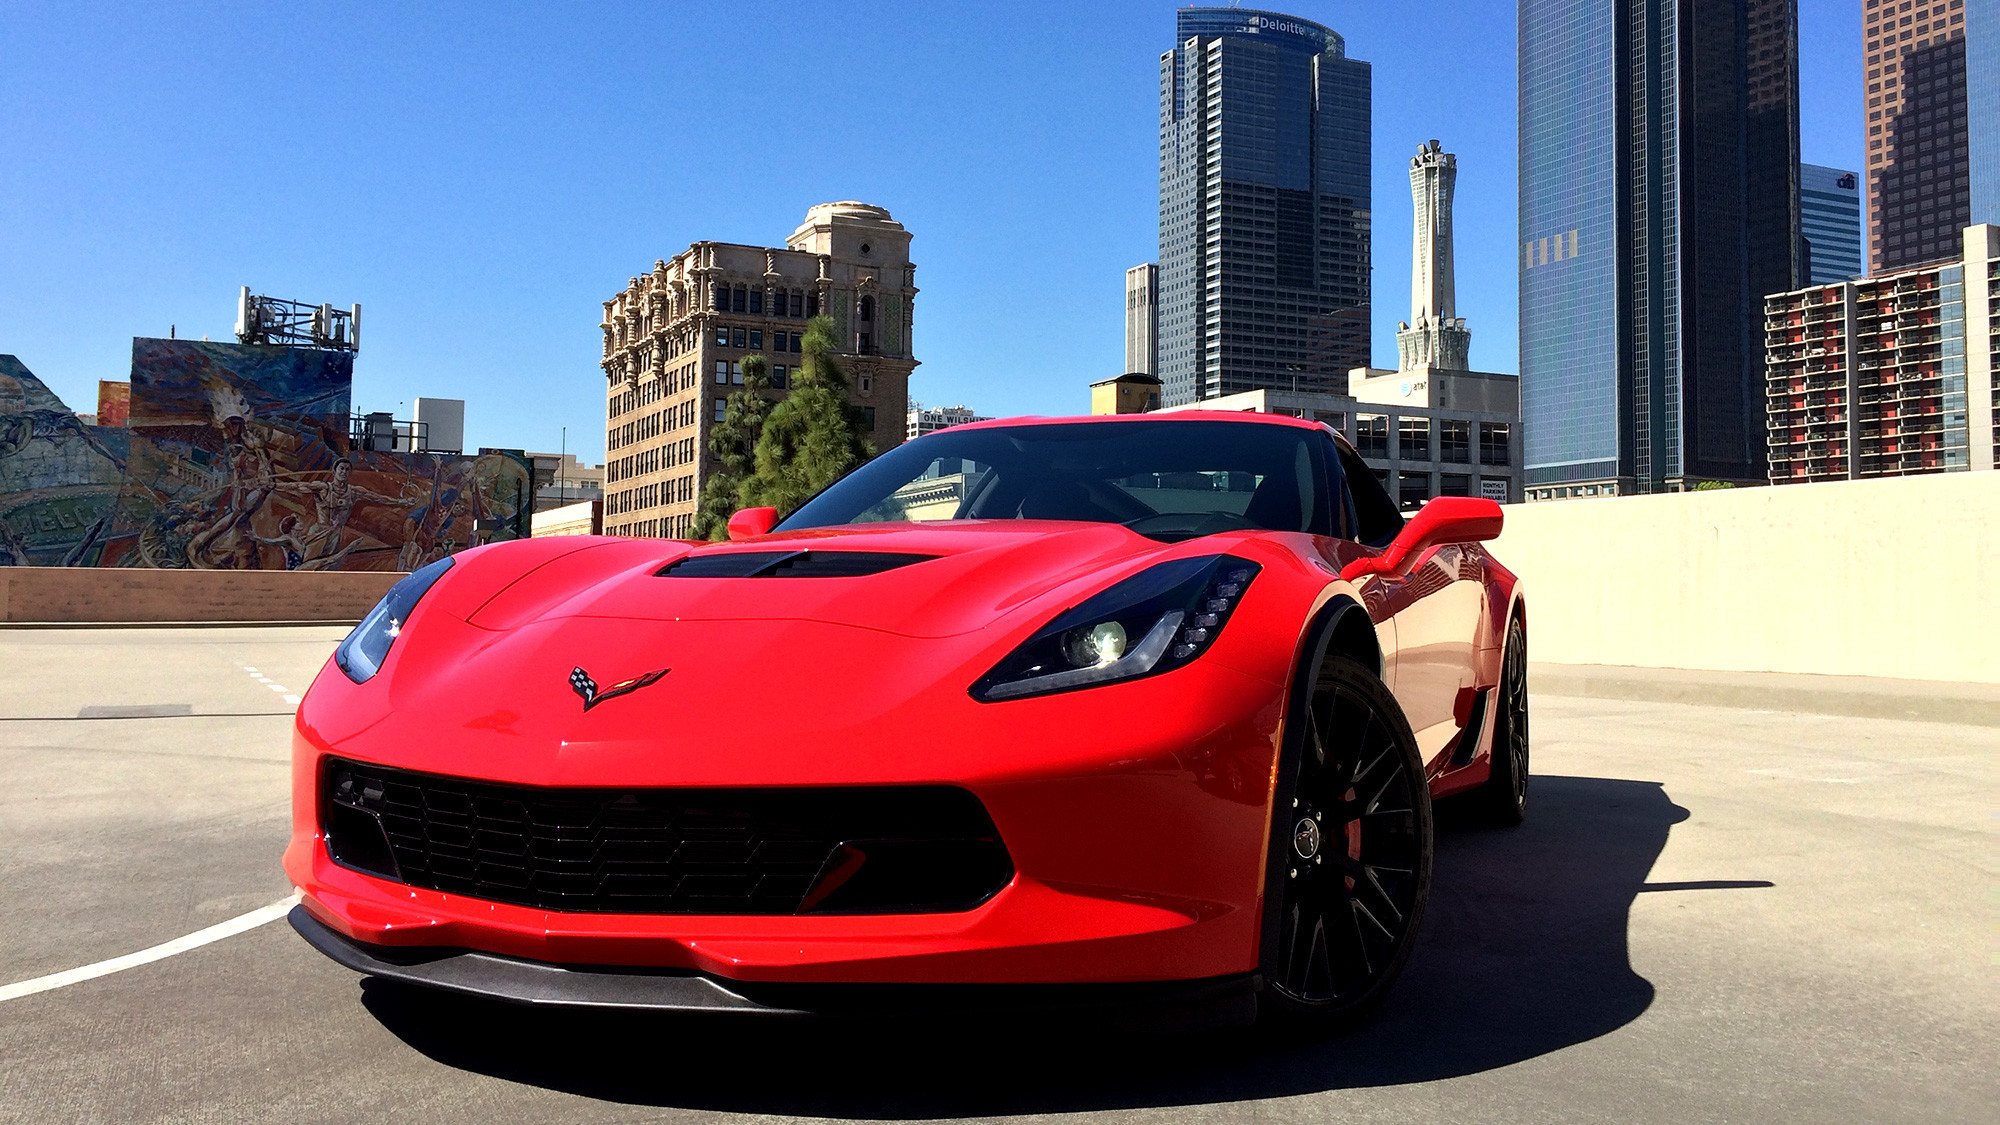 2015 Chevy Corvette Z06: the beast is the best bargain of all supercars